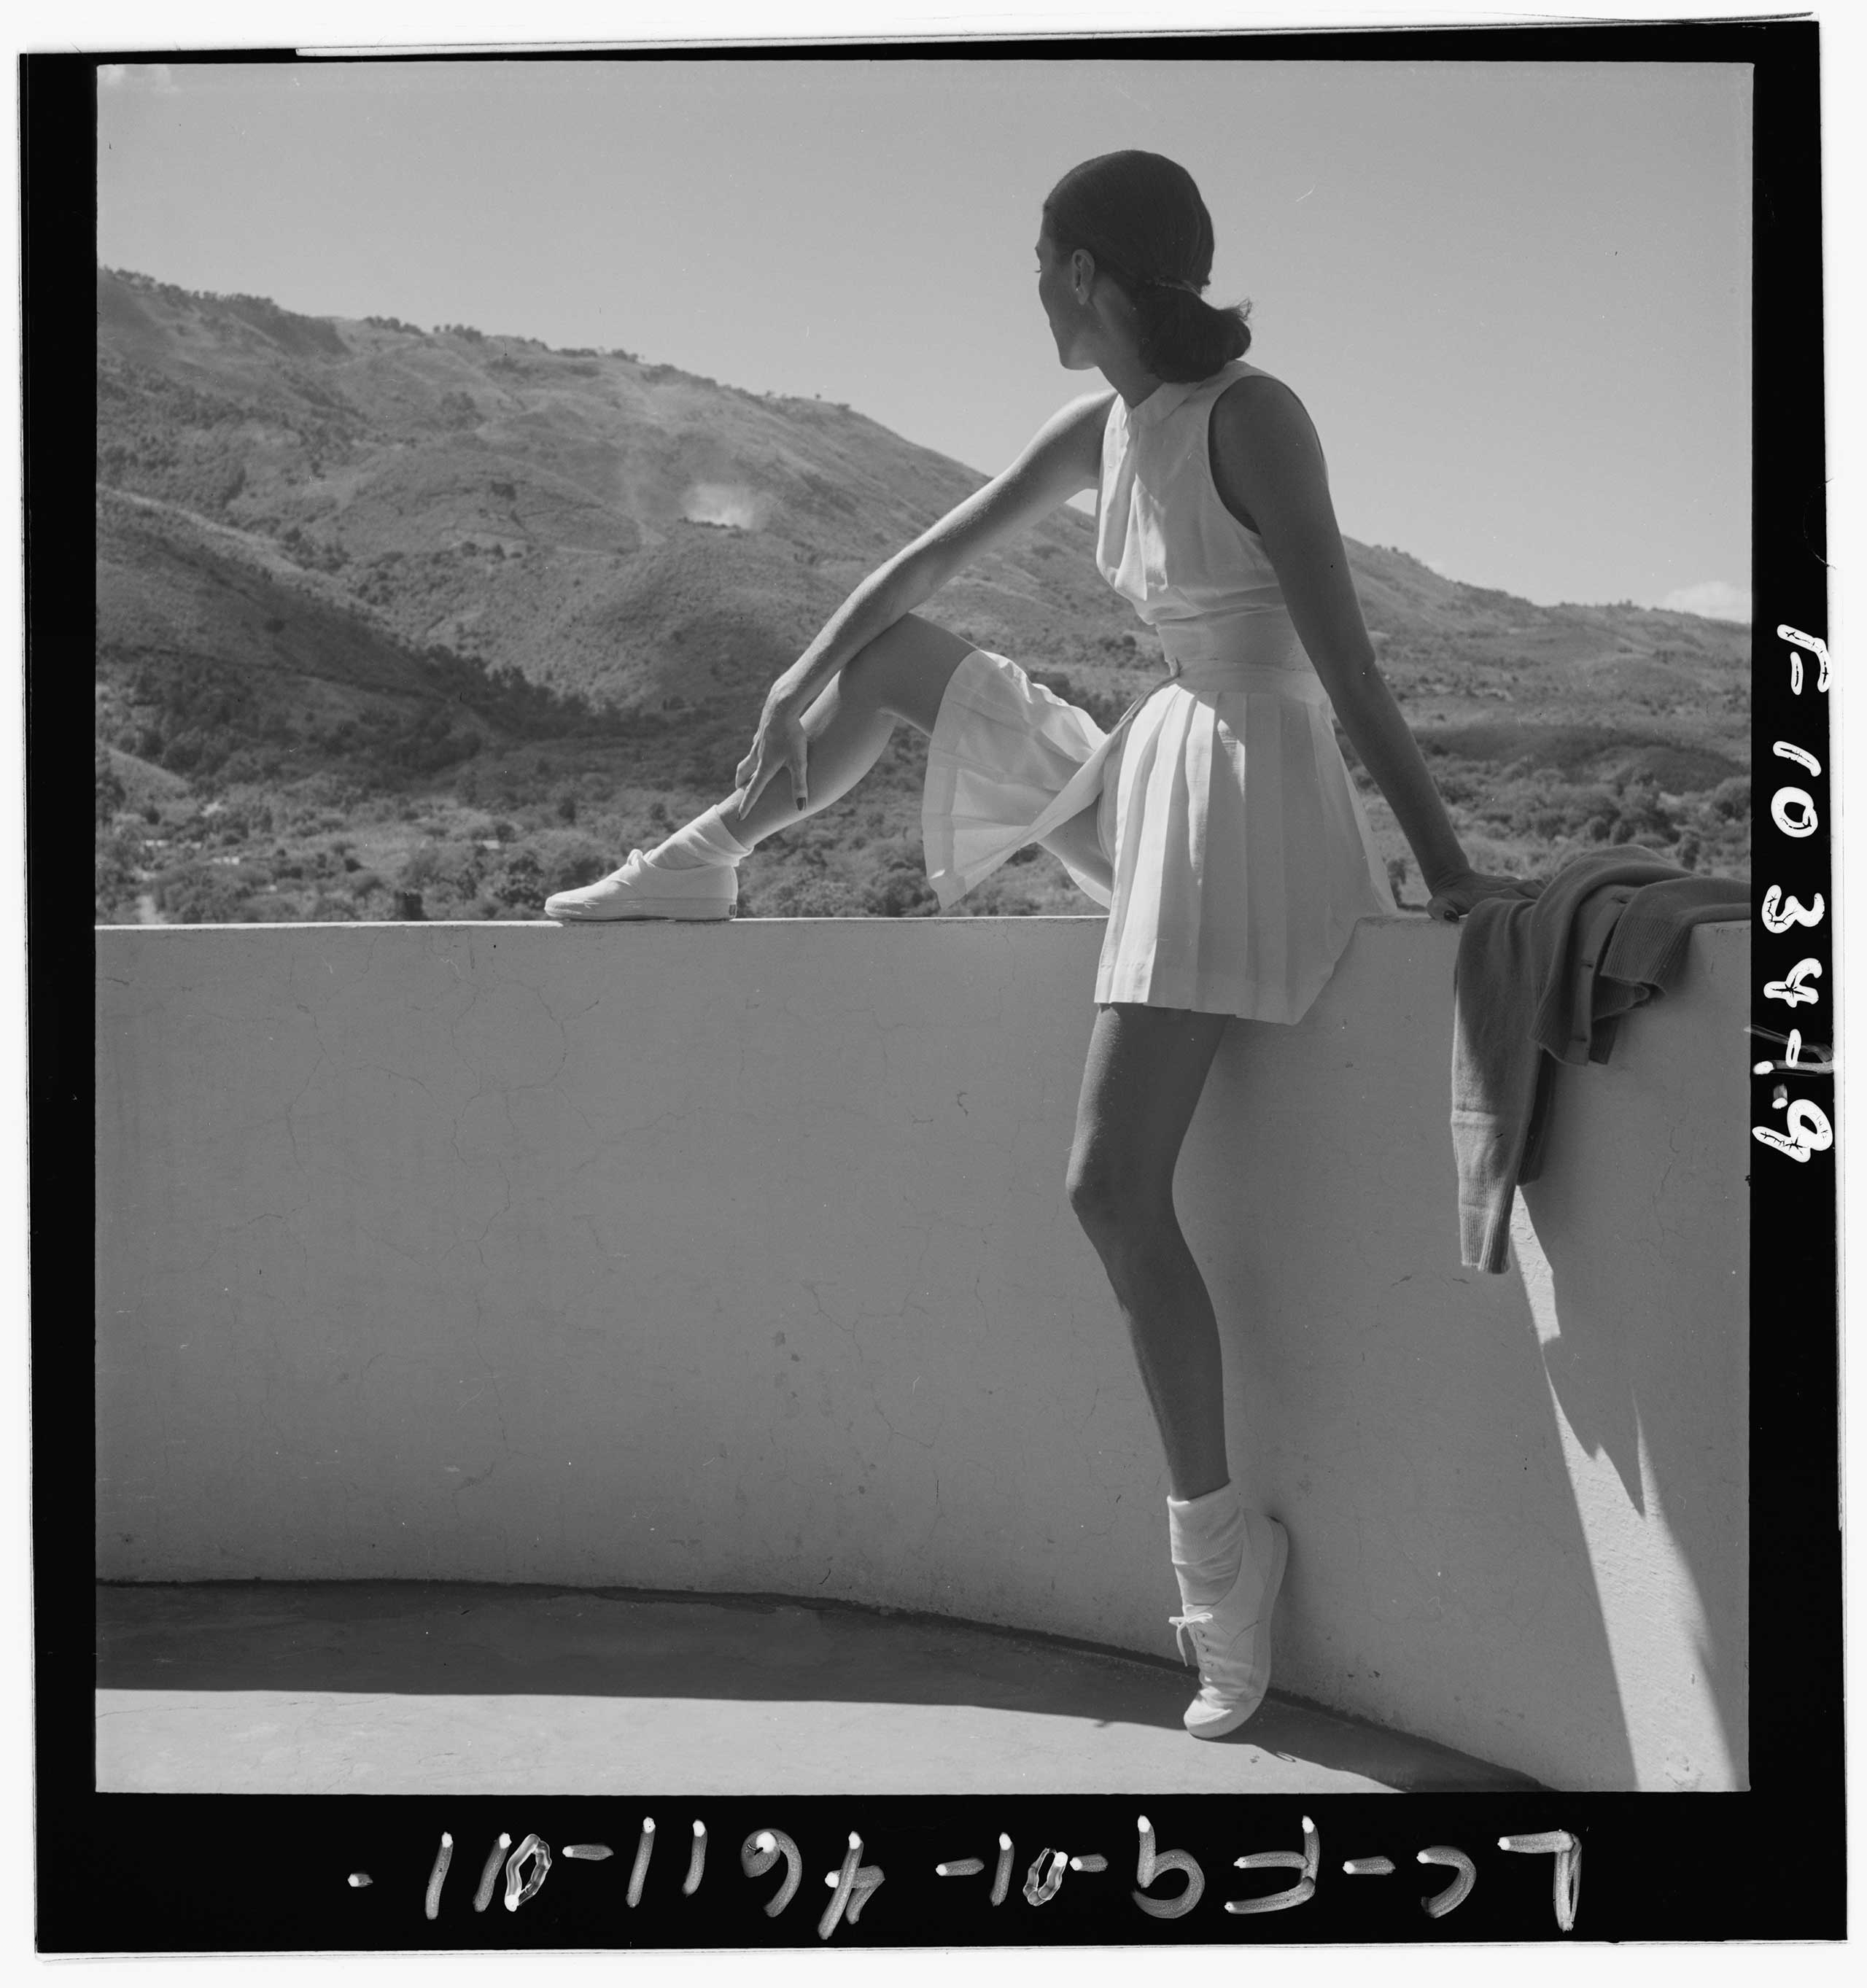 Woman wearing tennis outfit, seated on wall, with one leg on top of wall, looking at the mountains behind her. Published in Harpers Bazaar, Feb. 1947.